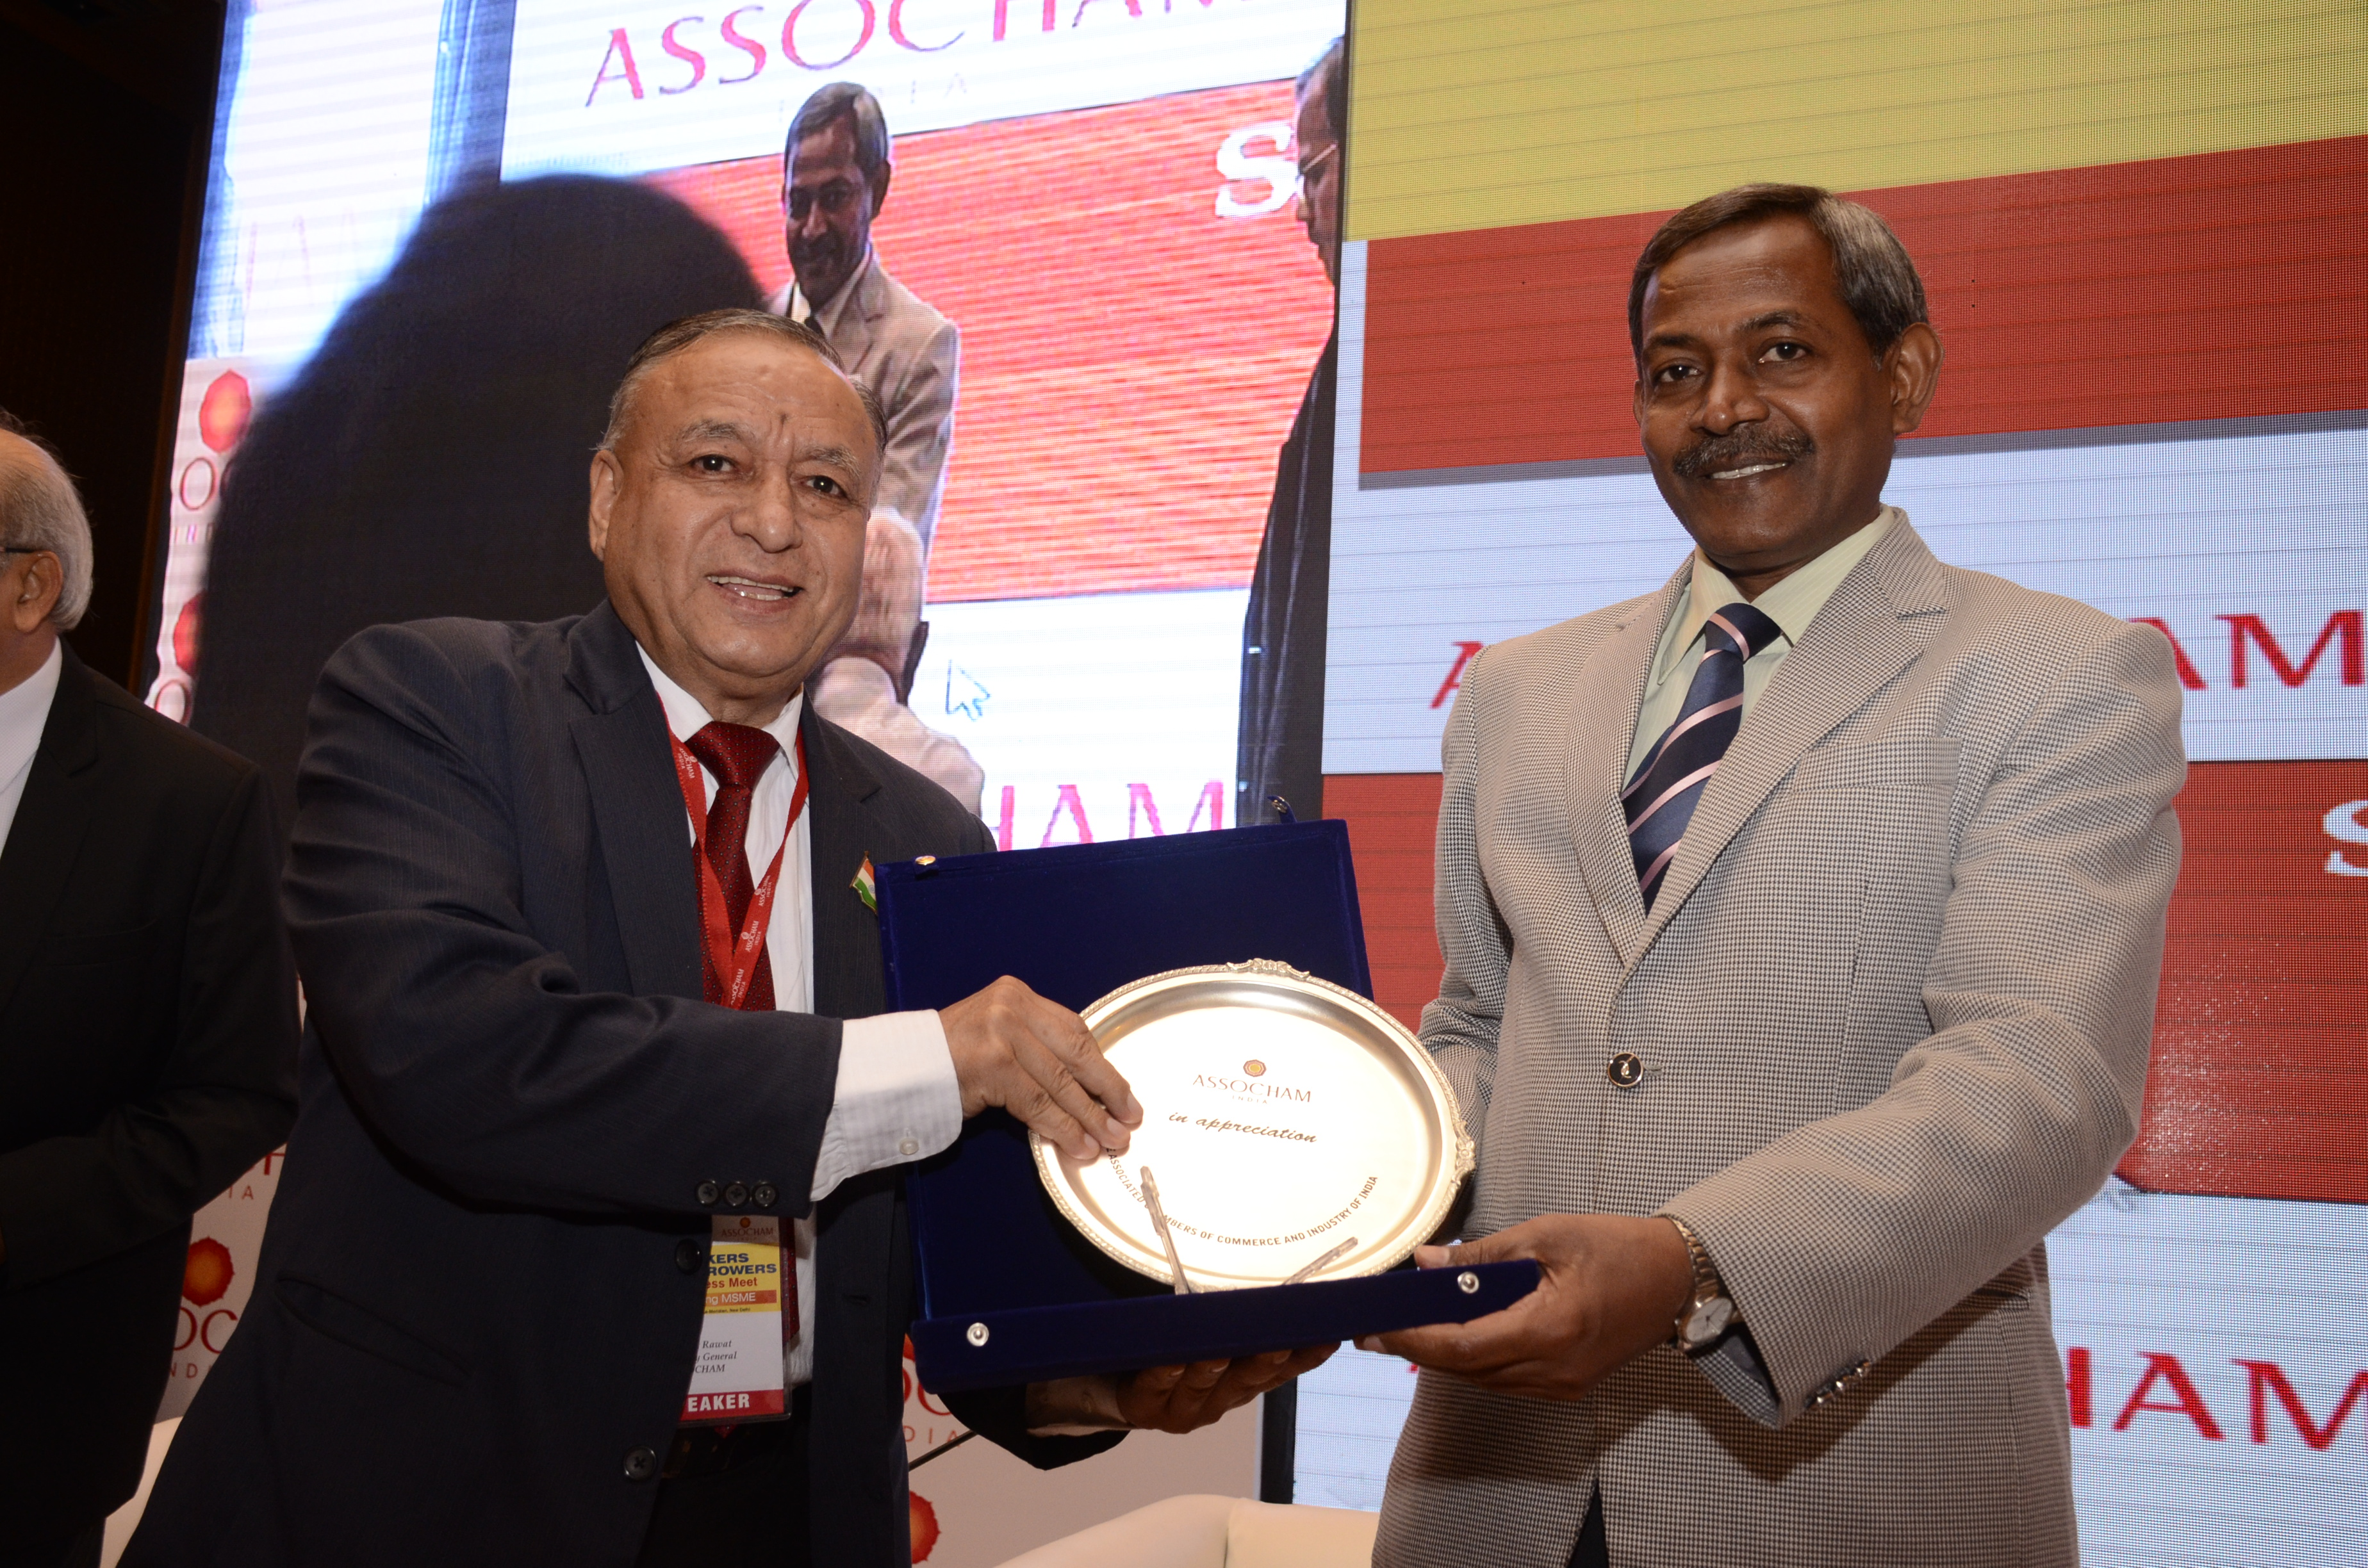 Dr Kshatrapati Shivaji Chairman SIDBI and MUDRA receiving Momento at ASSOCHAM Bankers Borrowers Business Meet